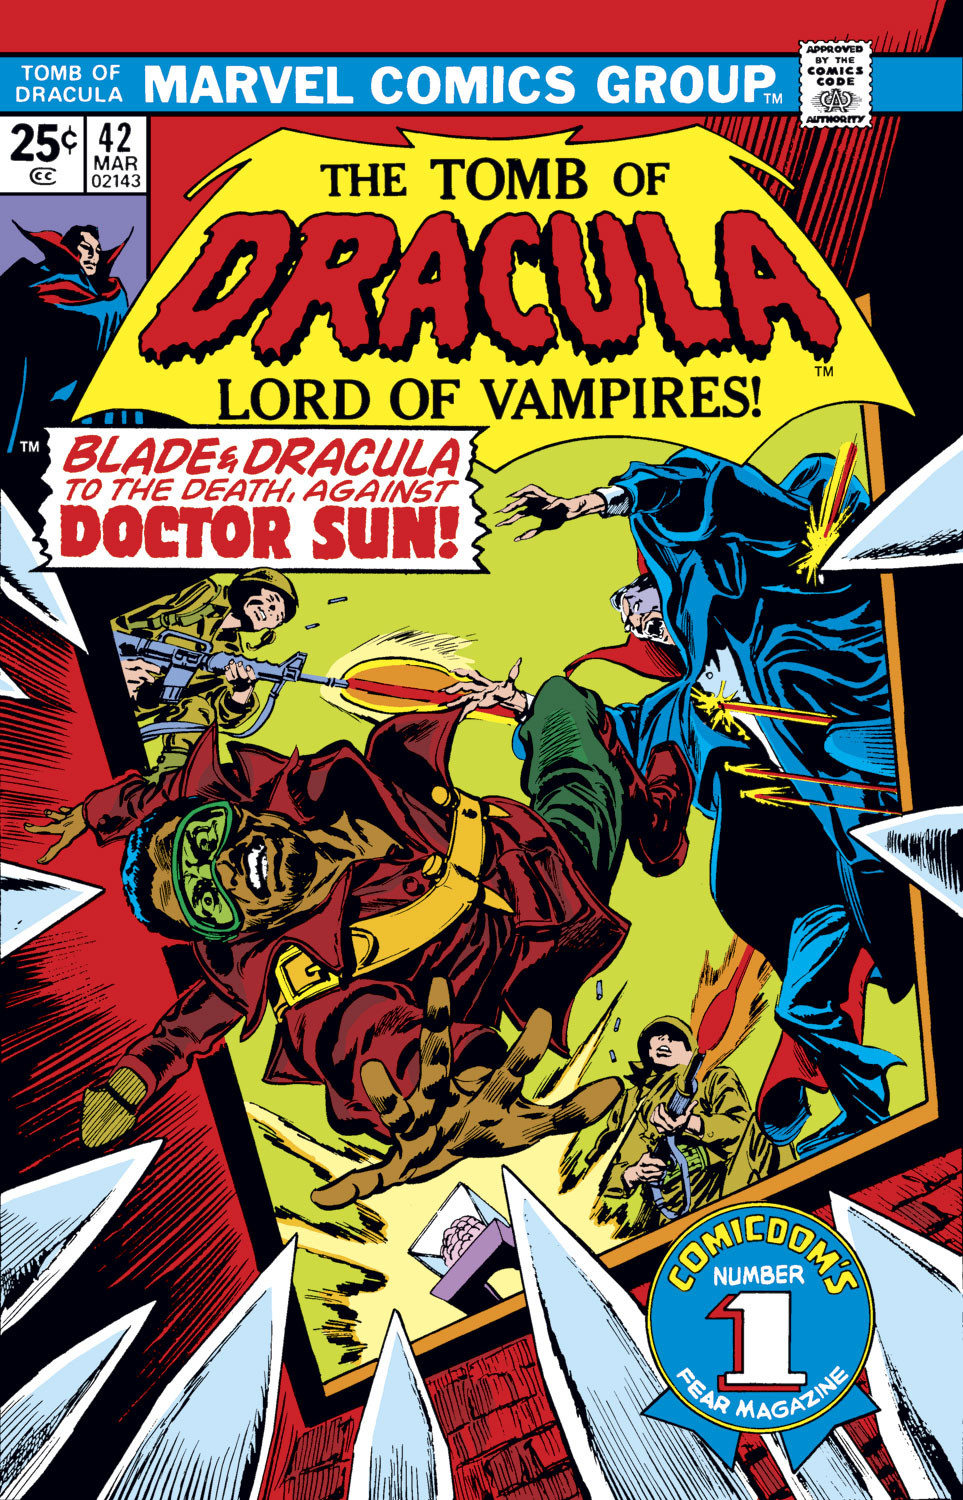 Tomb of Dracula Vol 1 42